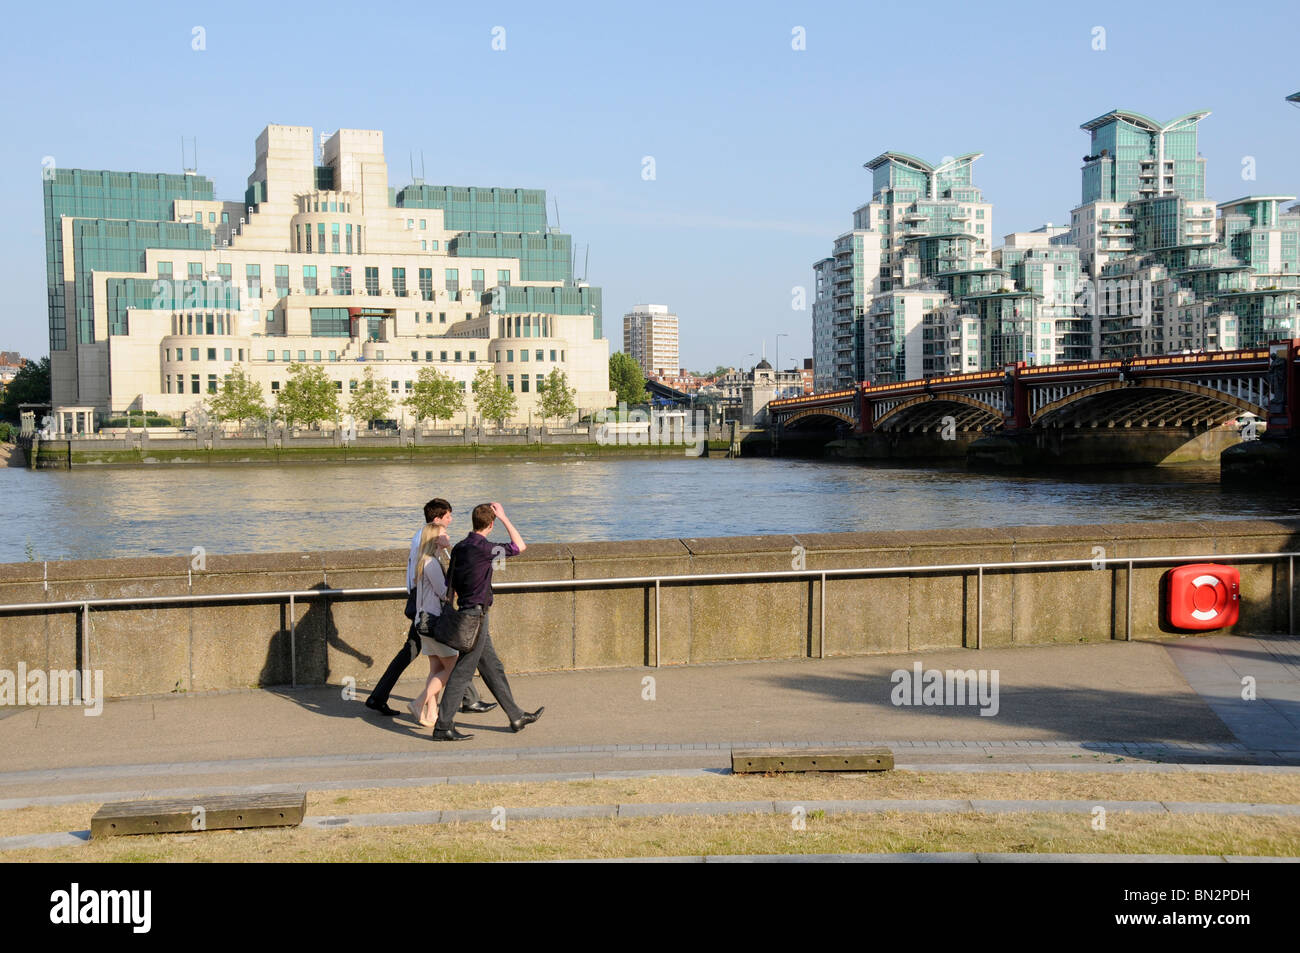 Mi5 photos mi5 images alamy - Lincroyable maison book tower londres ...